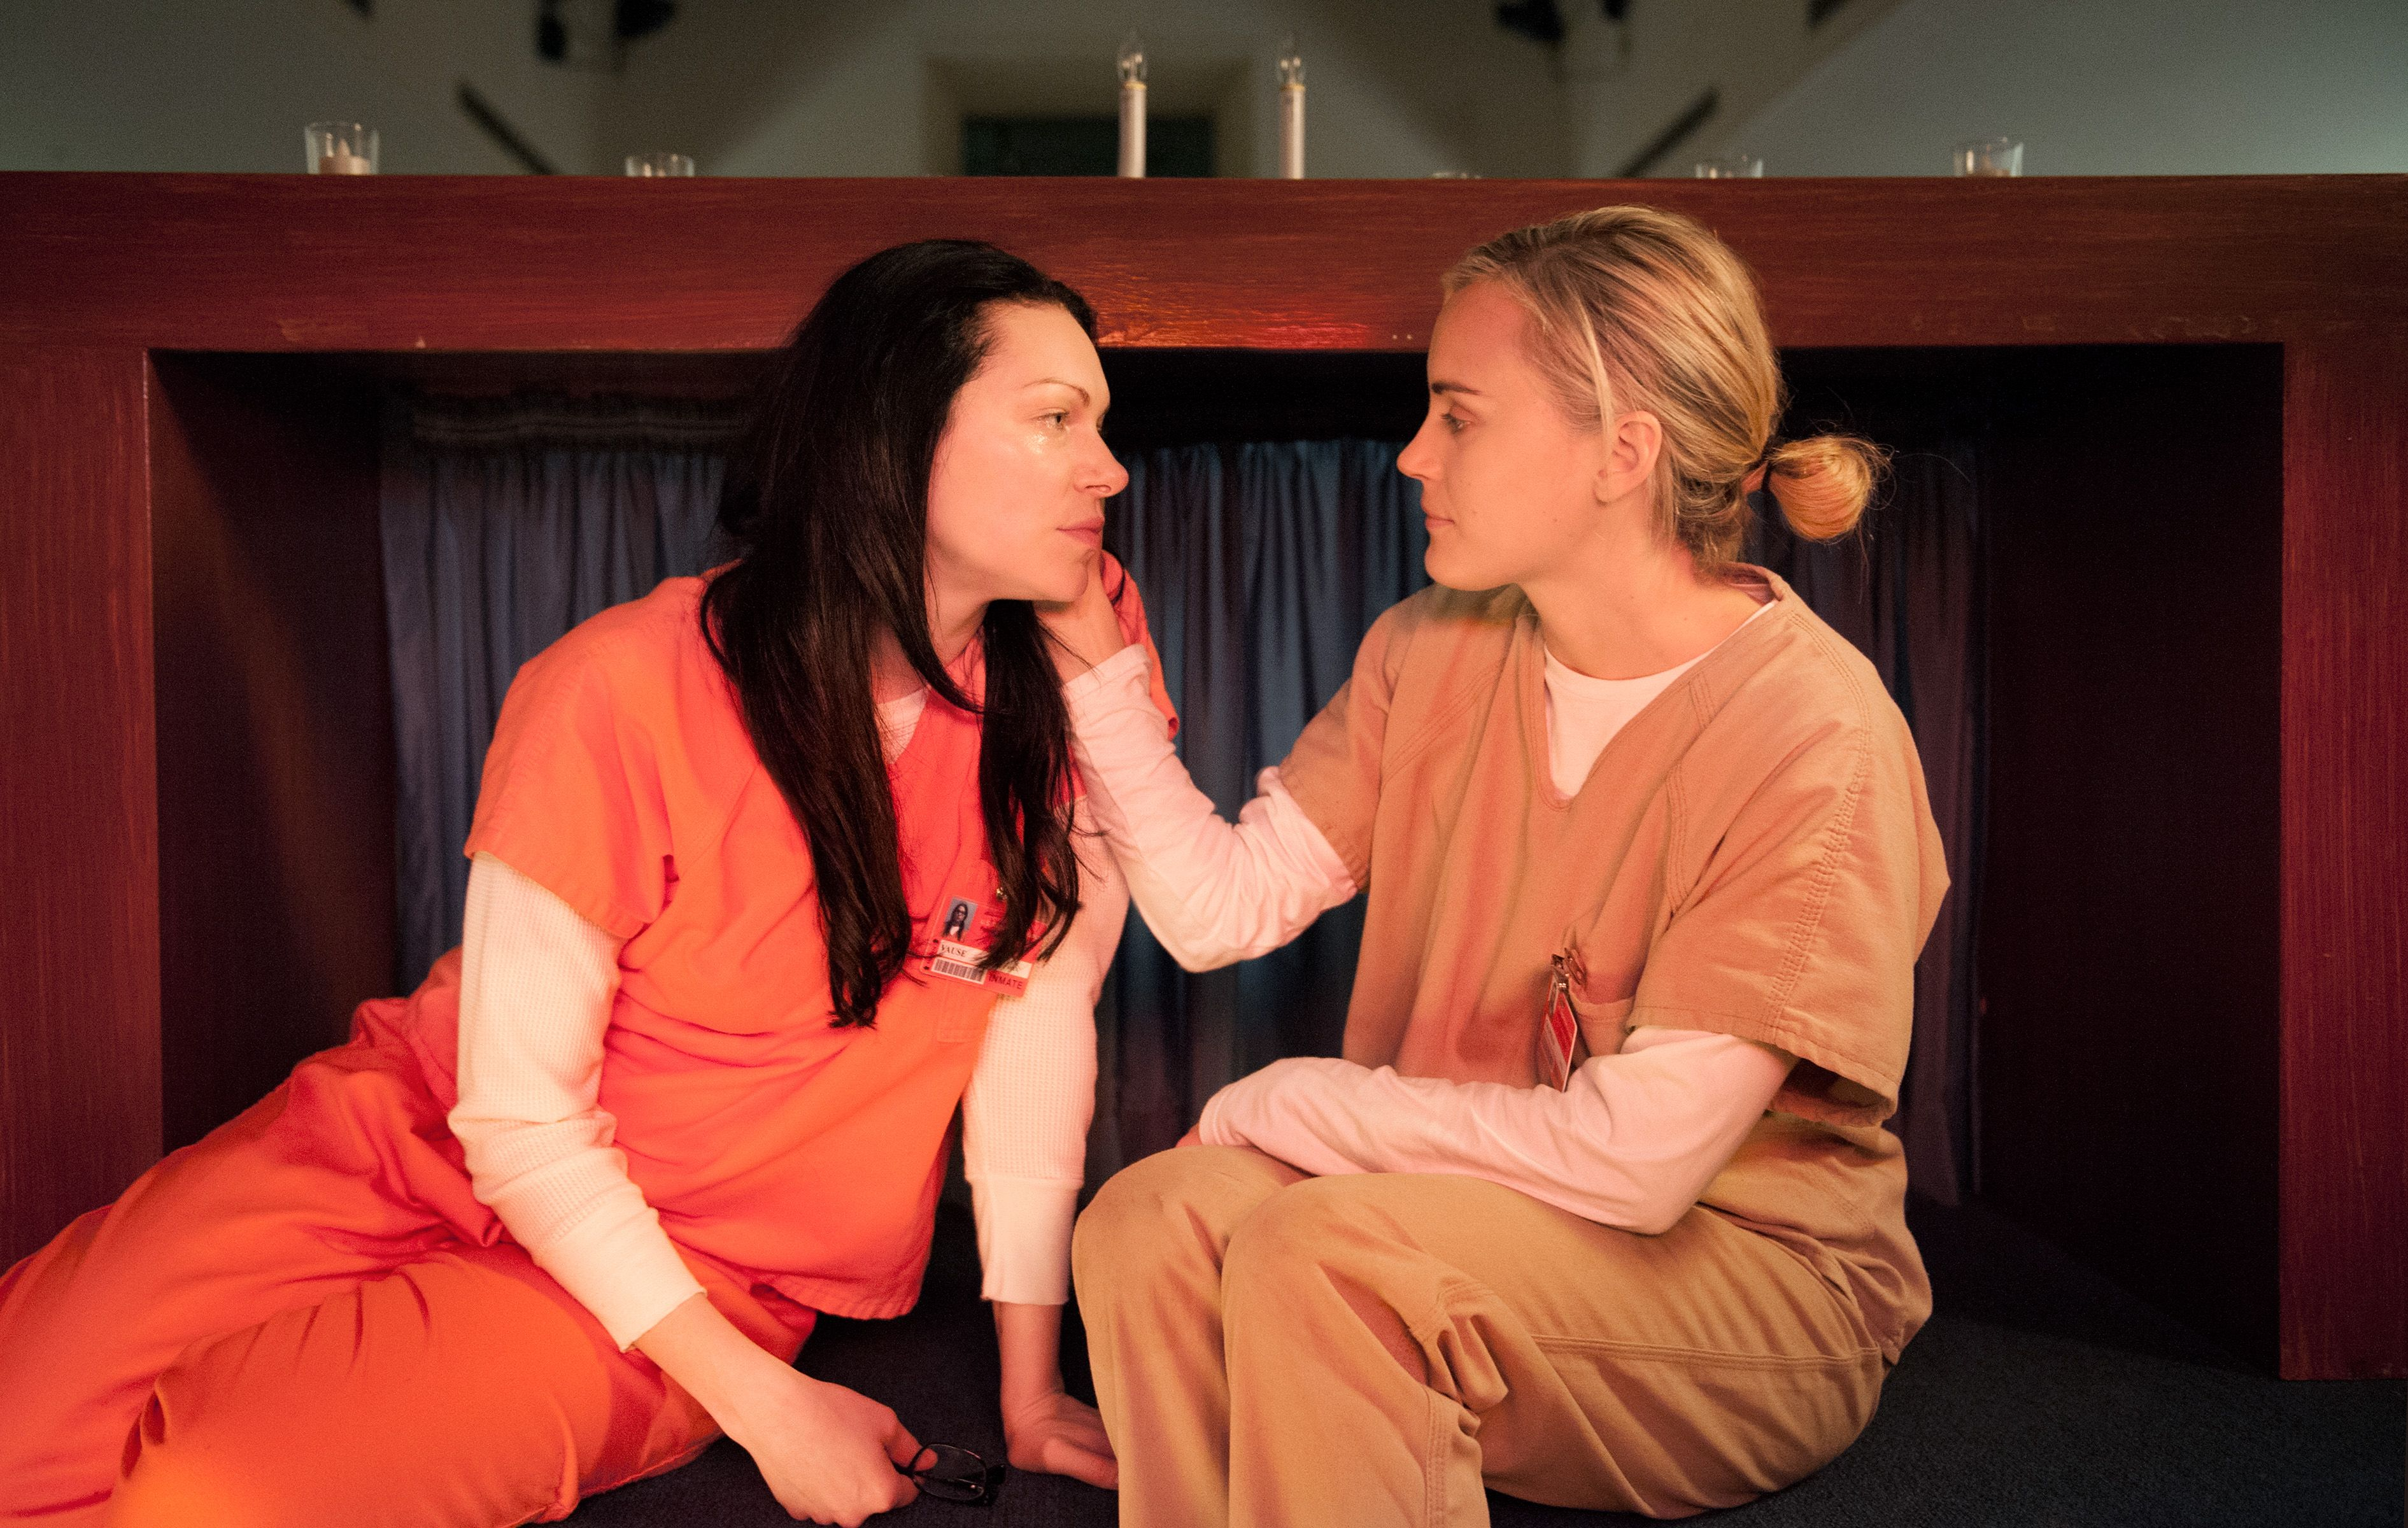 'Orange is the New Black' Orange takes place in a woman's prison and the catalyst for the show involves a lesbian romance—there's no question about how naked this show gets.